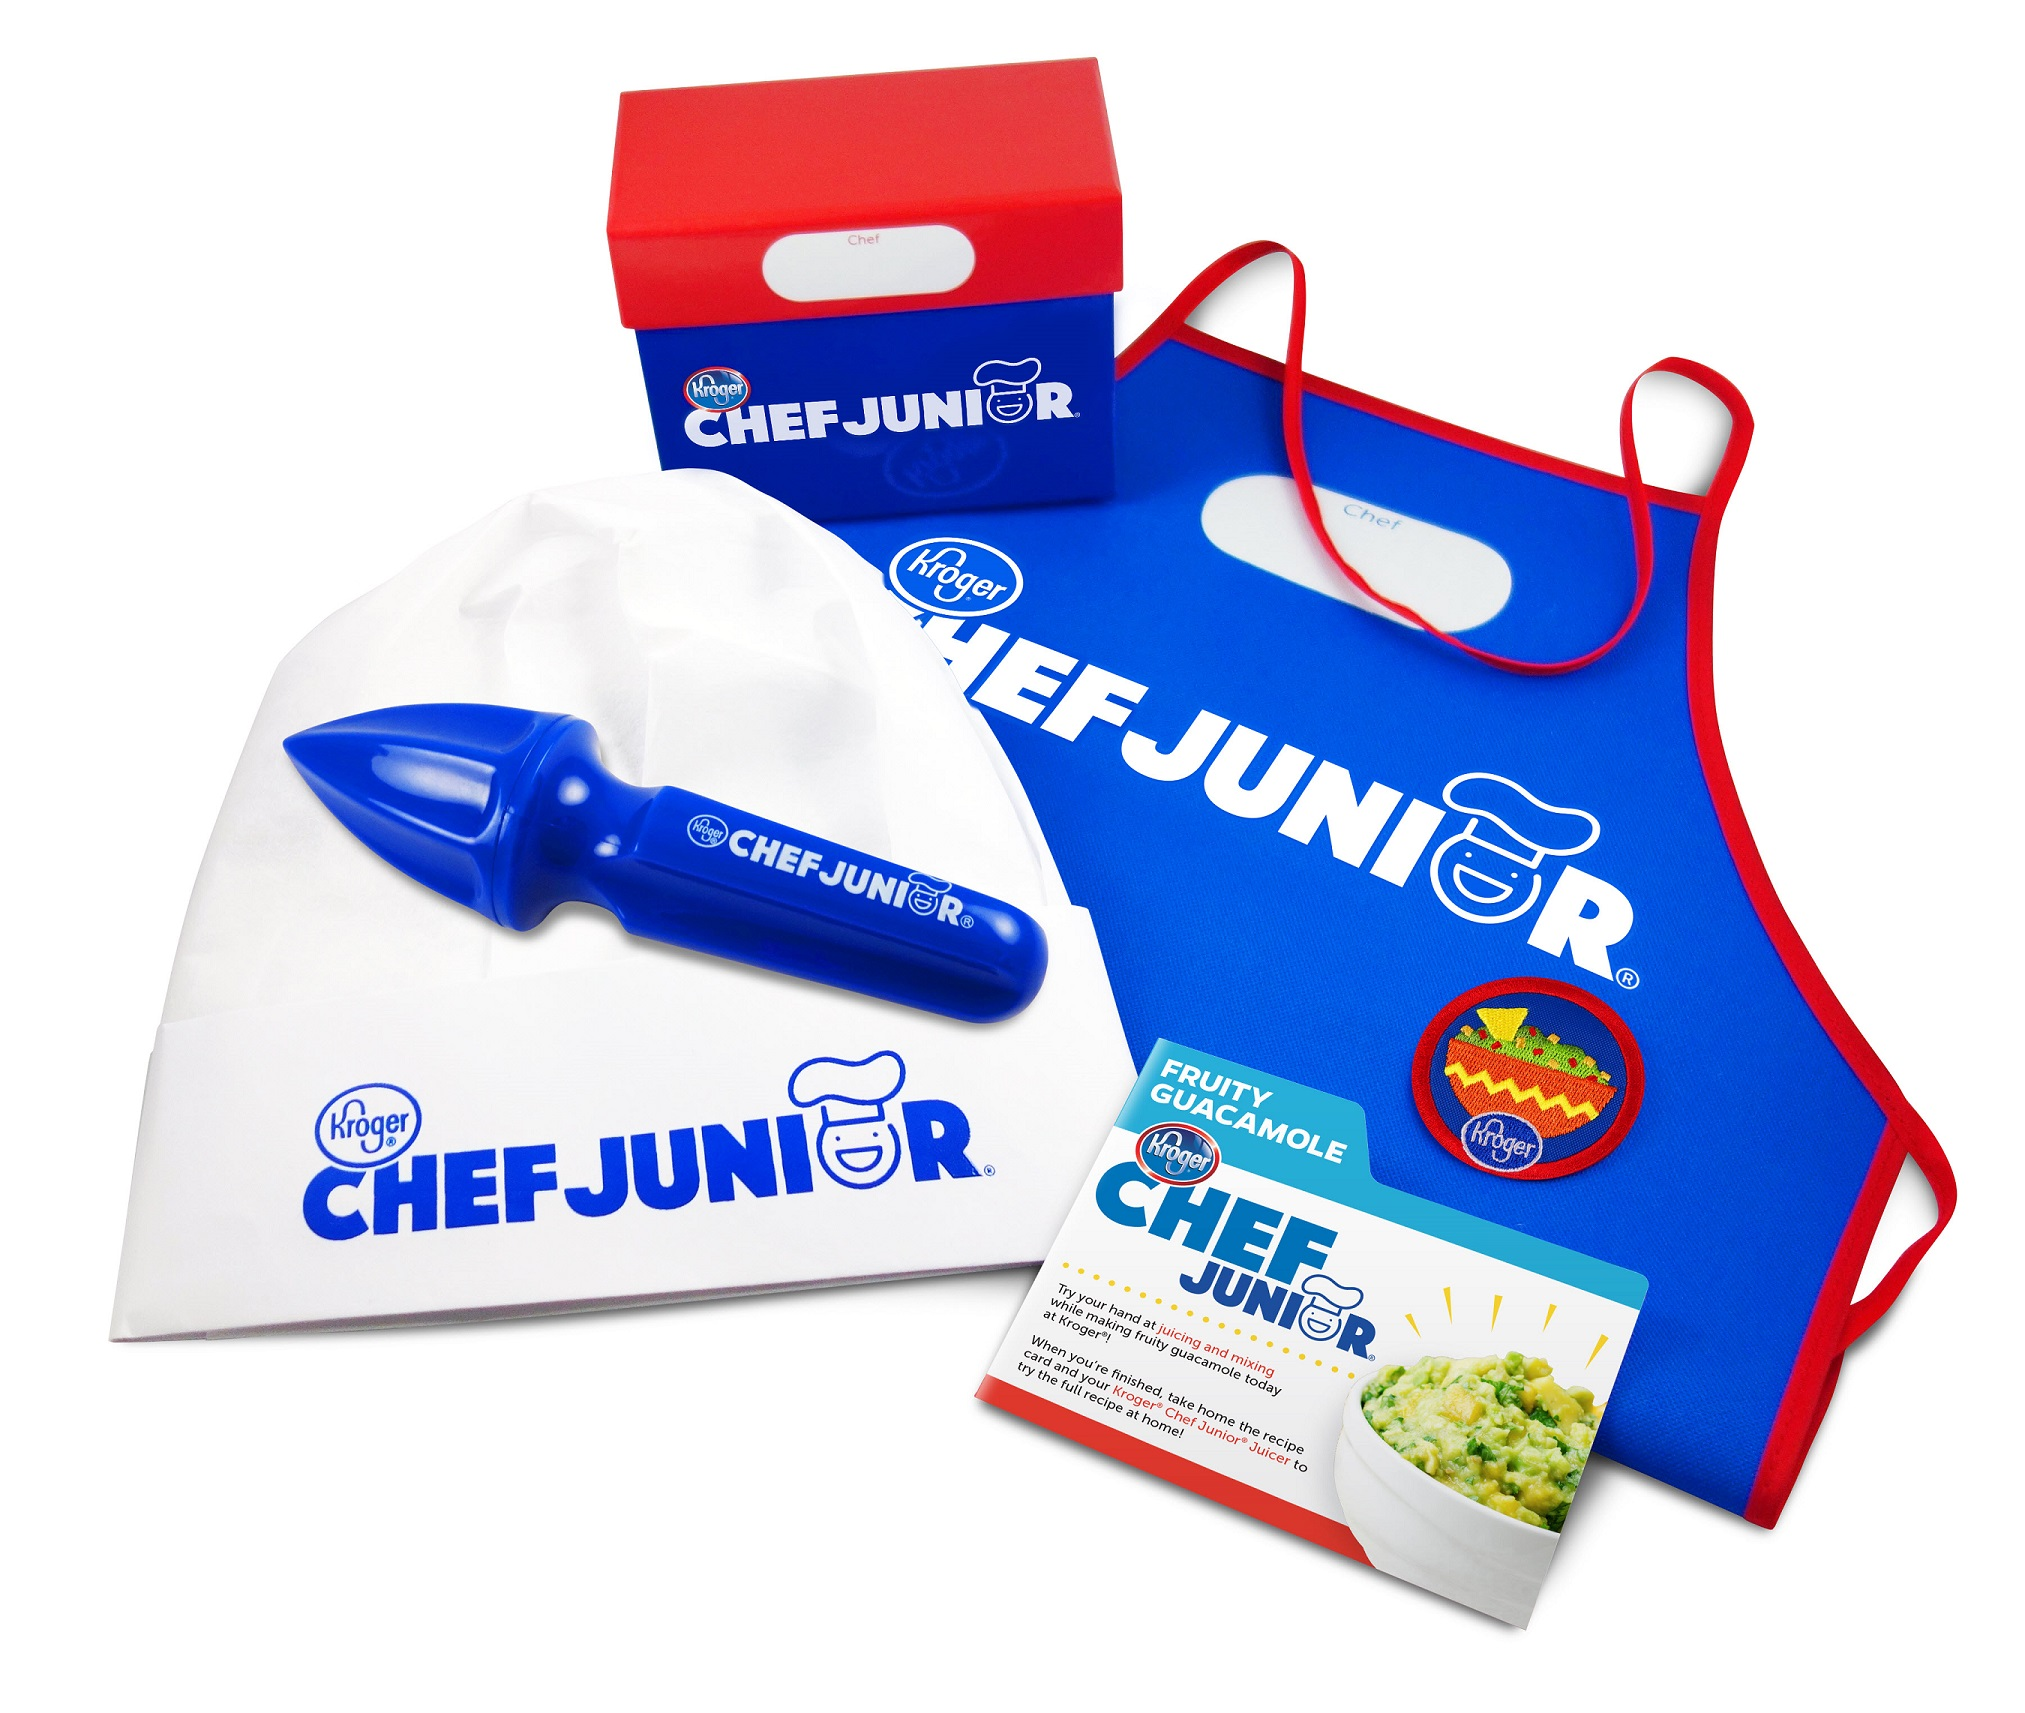 Kroger Chef Junior Fruity Guacamole